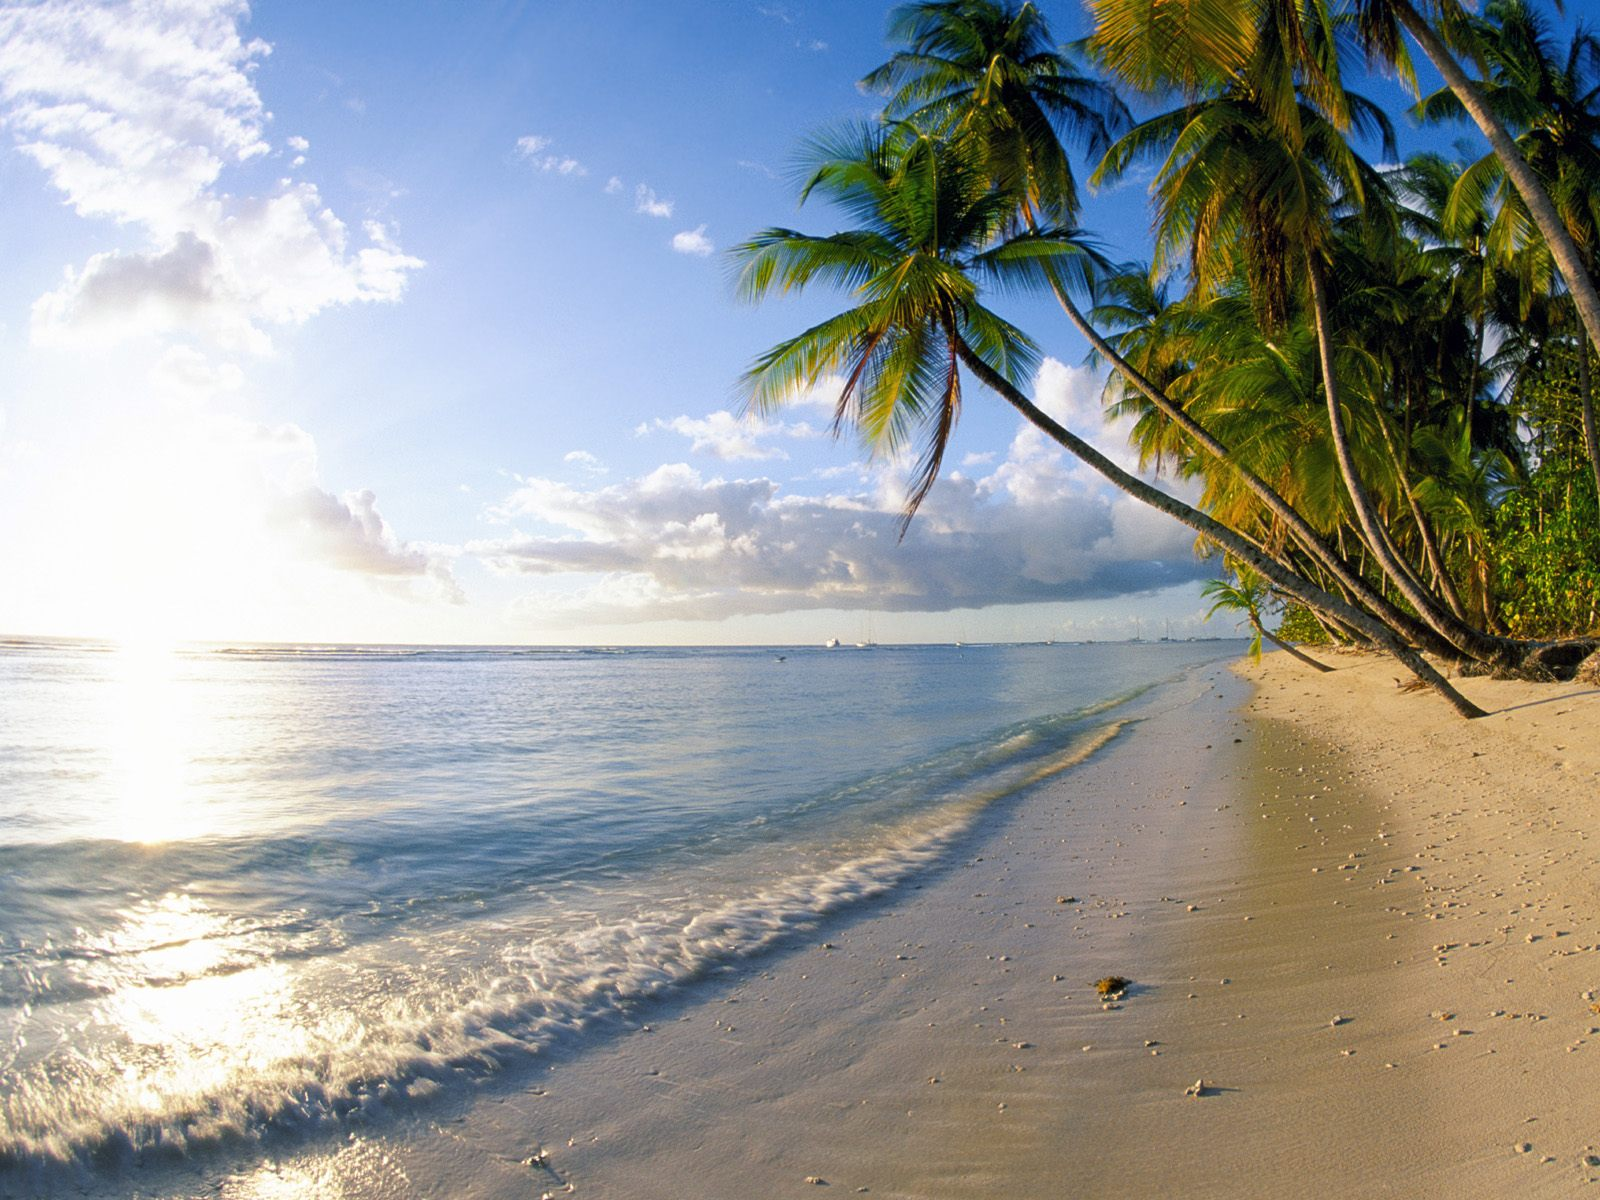 Hd Tropical Island Beach Paradise Wallpapers And Backgrounds: Sembrono: Wallpapers Of Beach